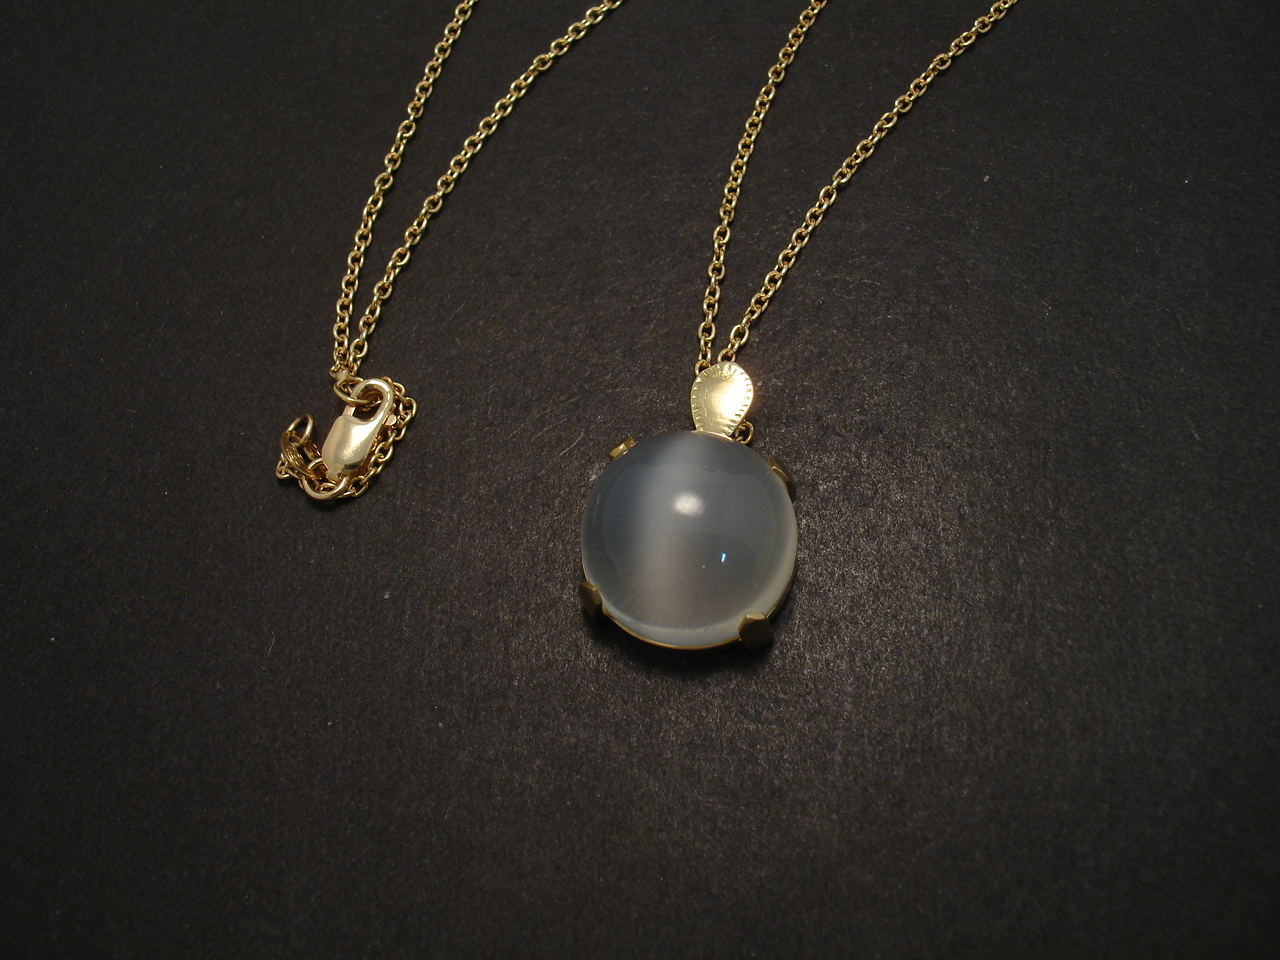 moonstone pendant 18ct gold christopher william sydney